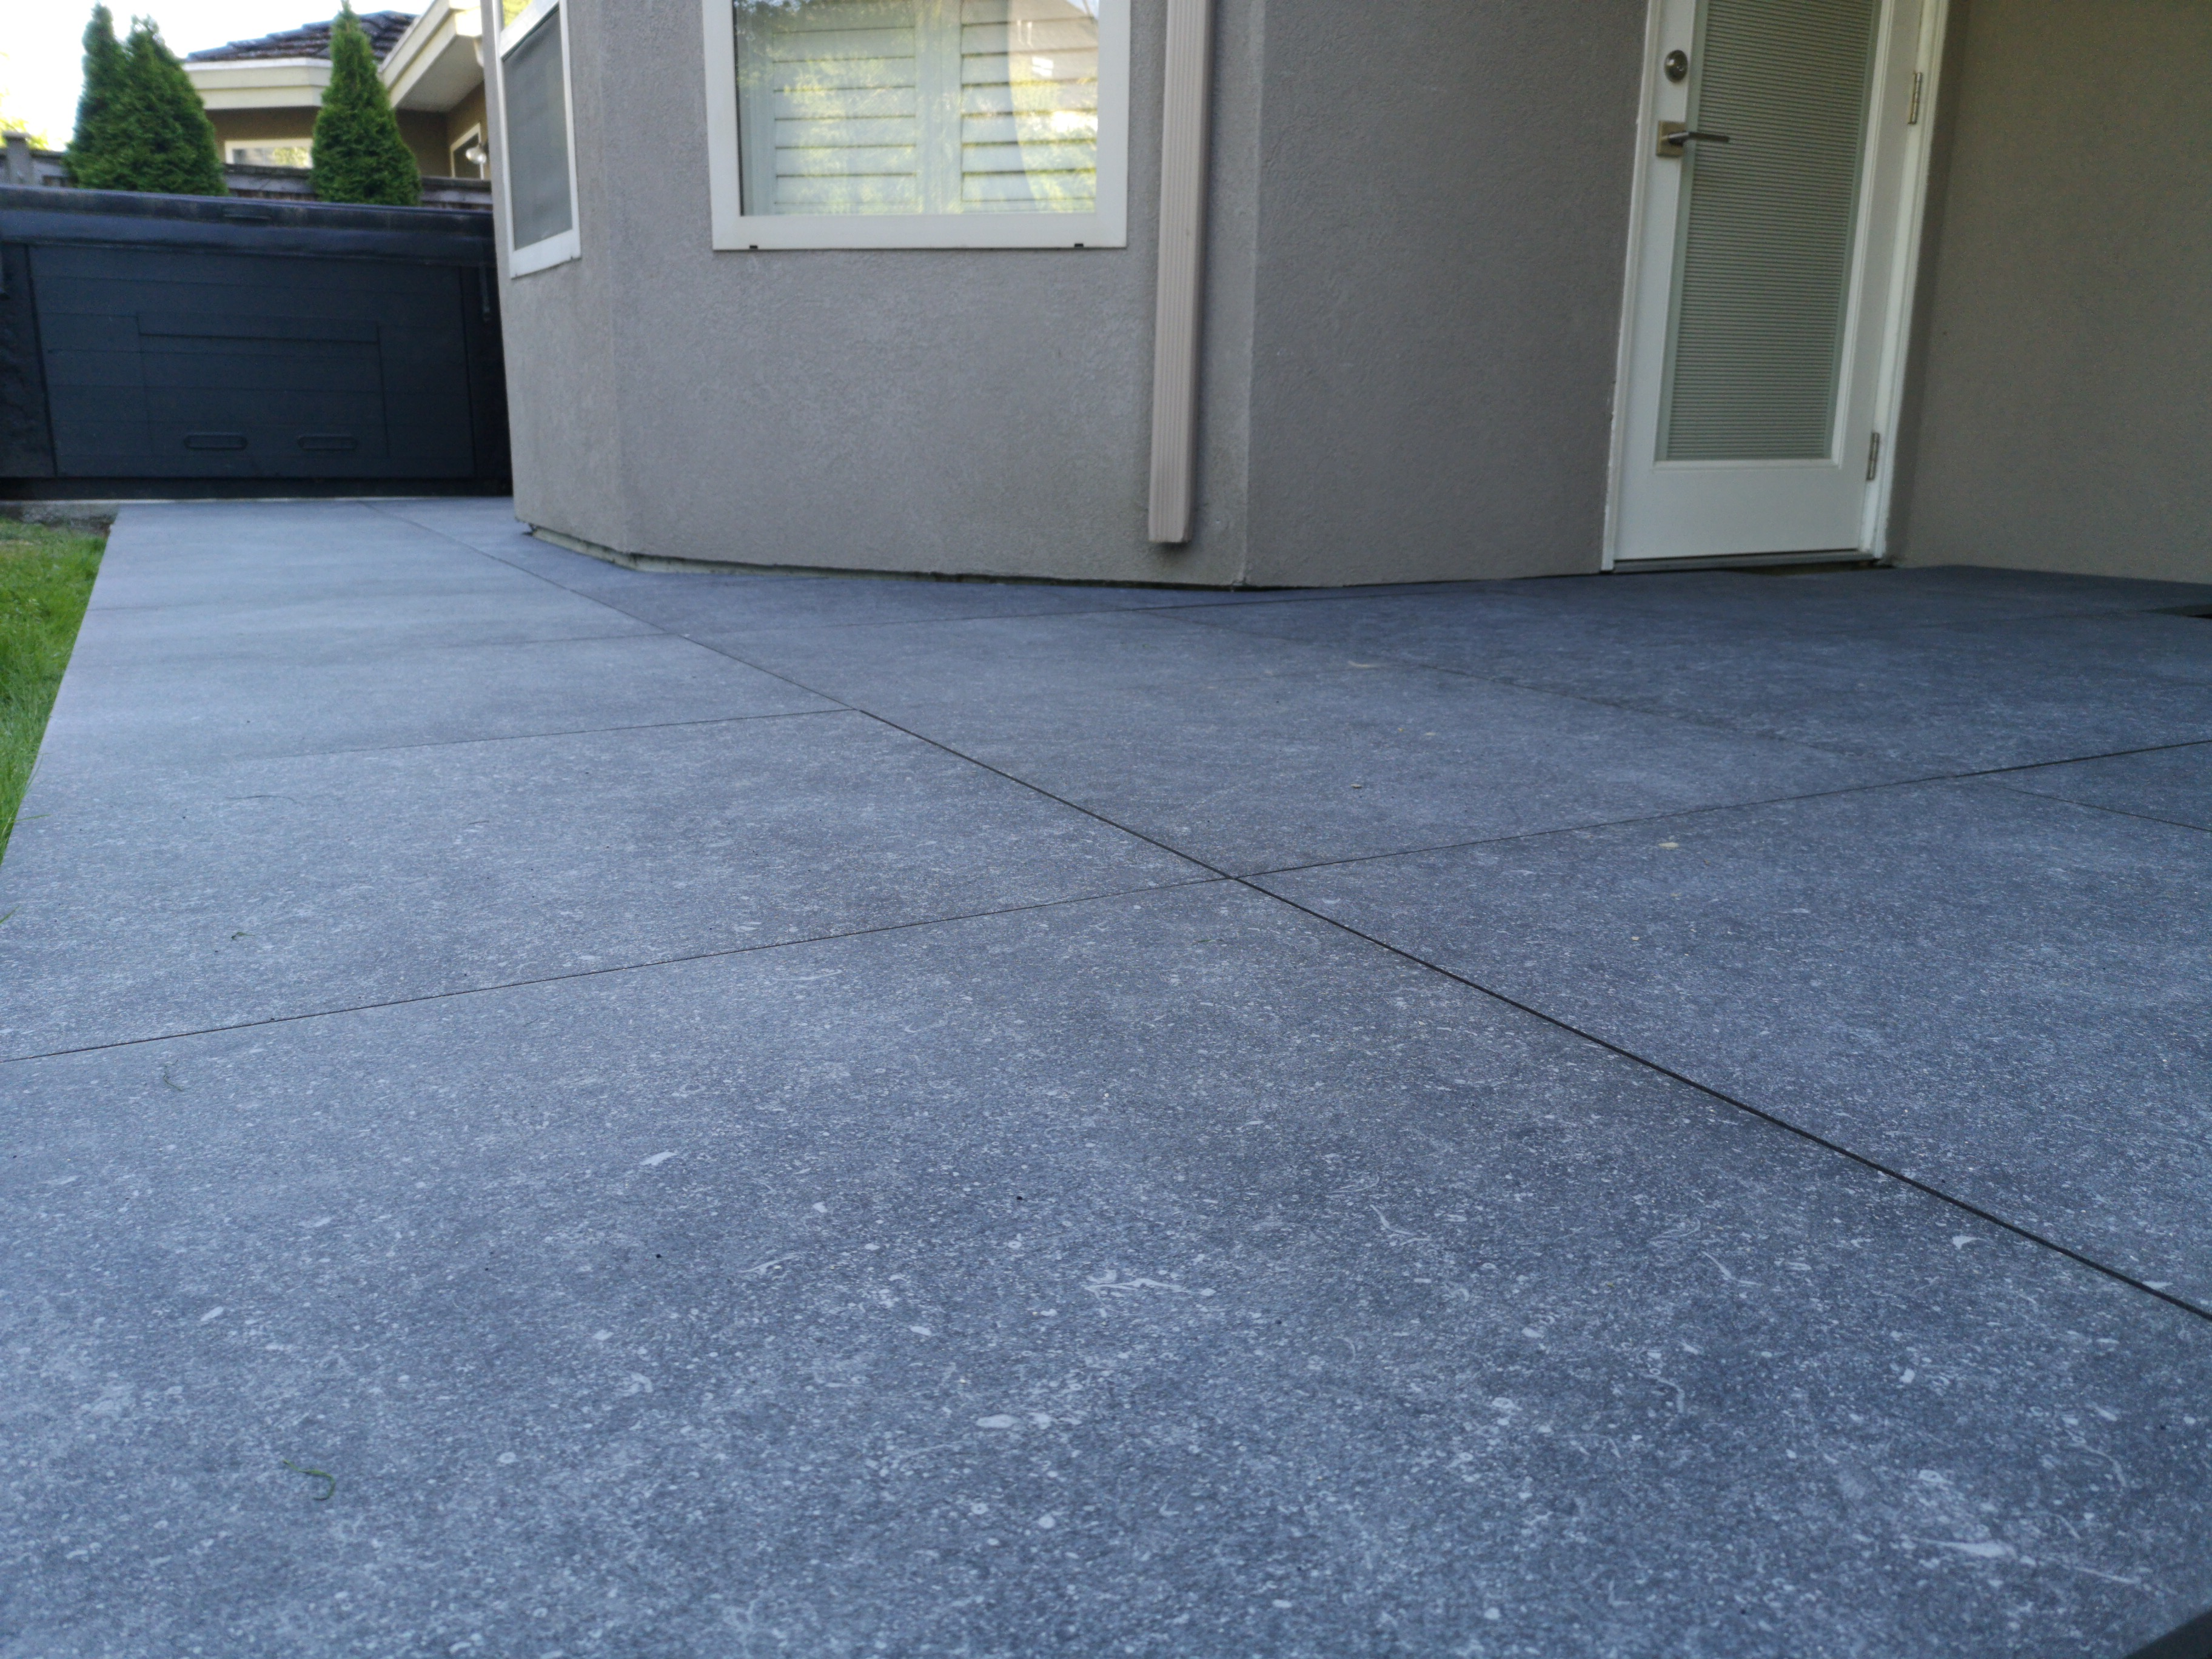 BC-Outdoor-Flooring-Structural-Pavers-House-Deck